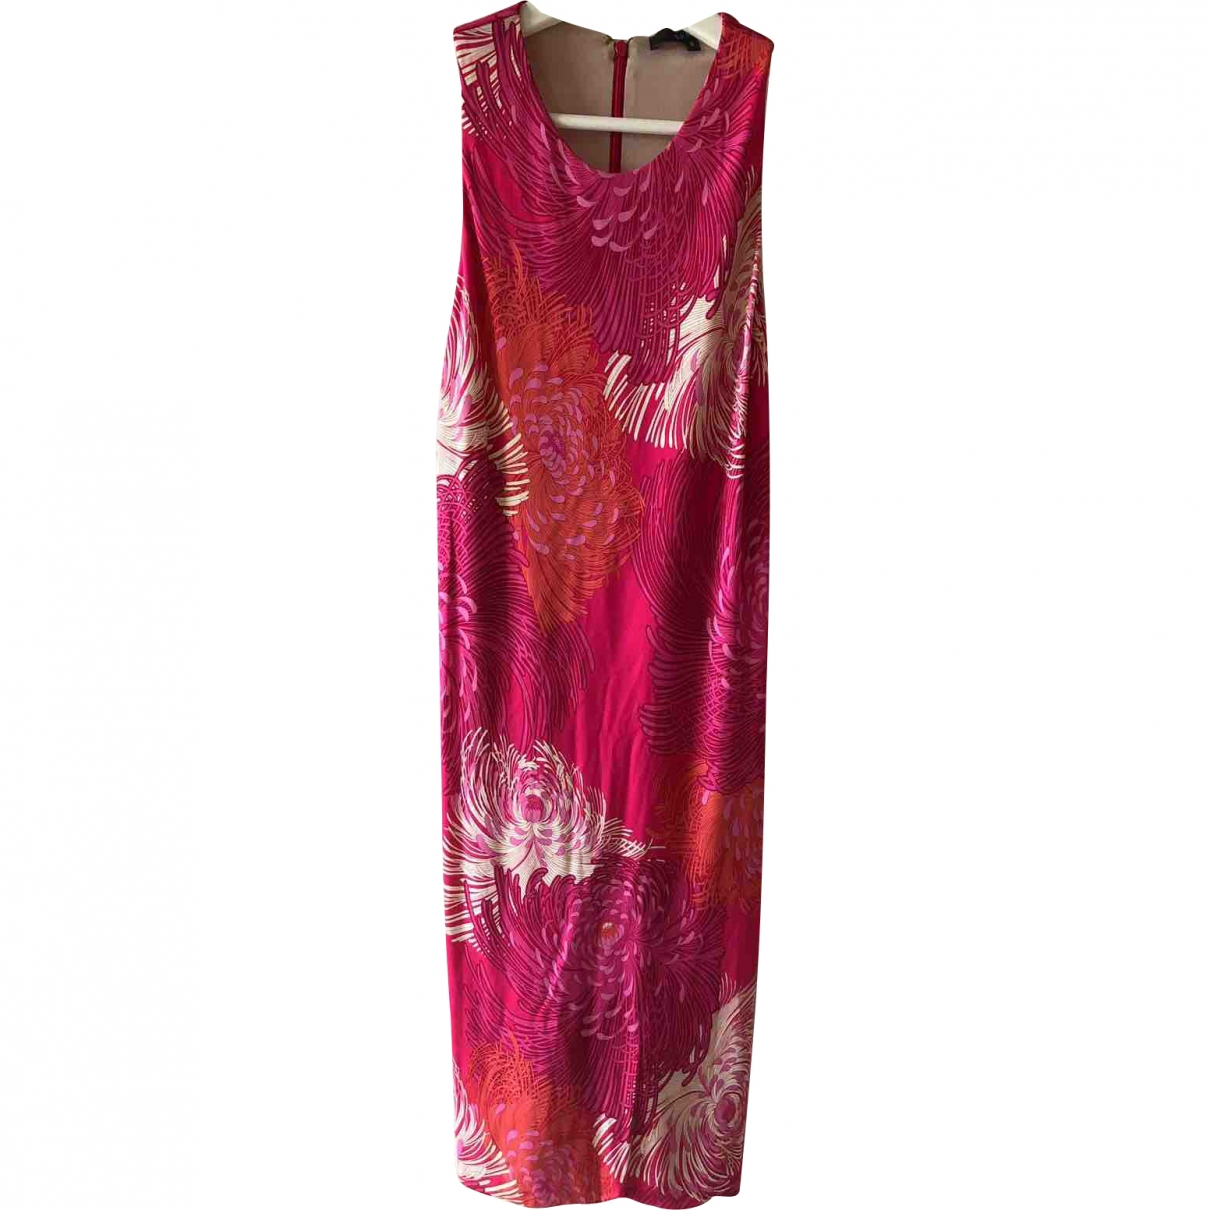 Gucci \N Pink Cotton - elasthane dress for Women S International